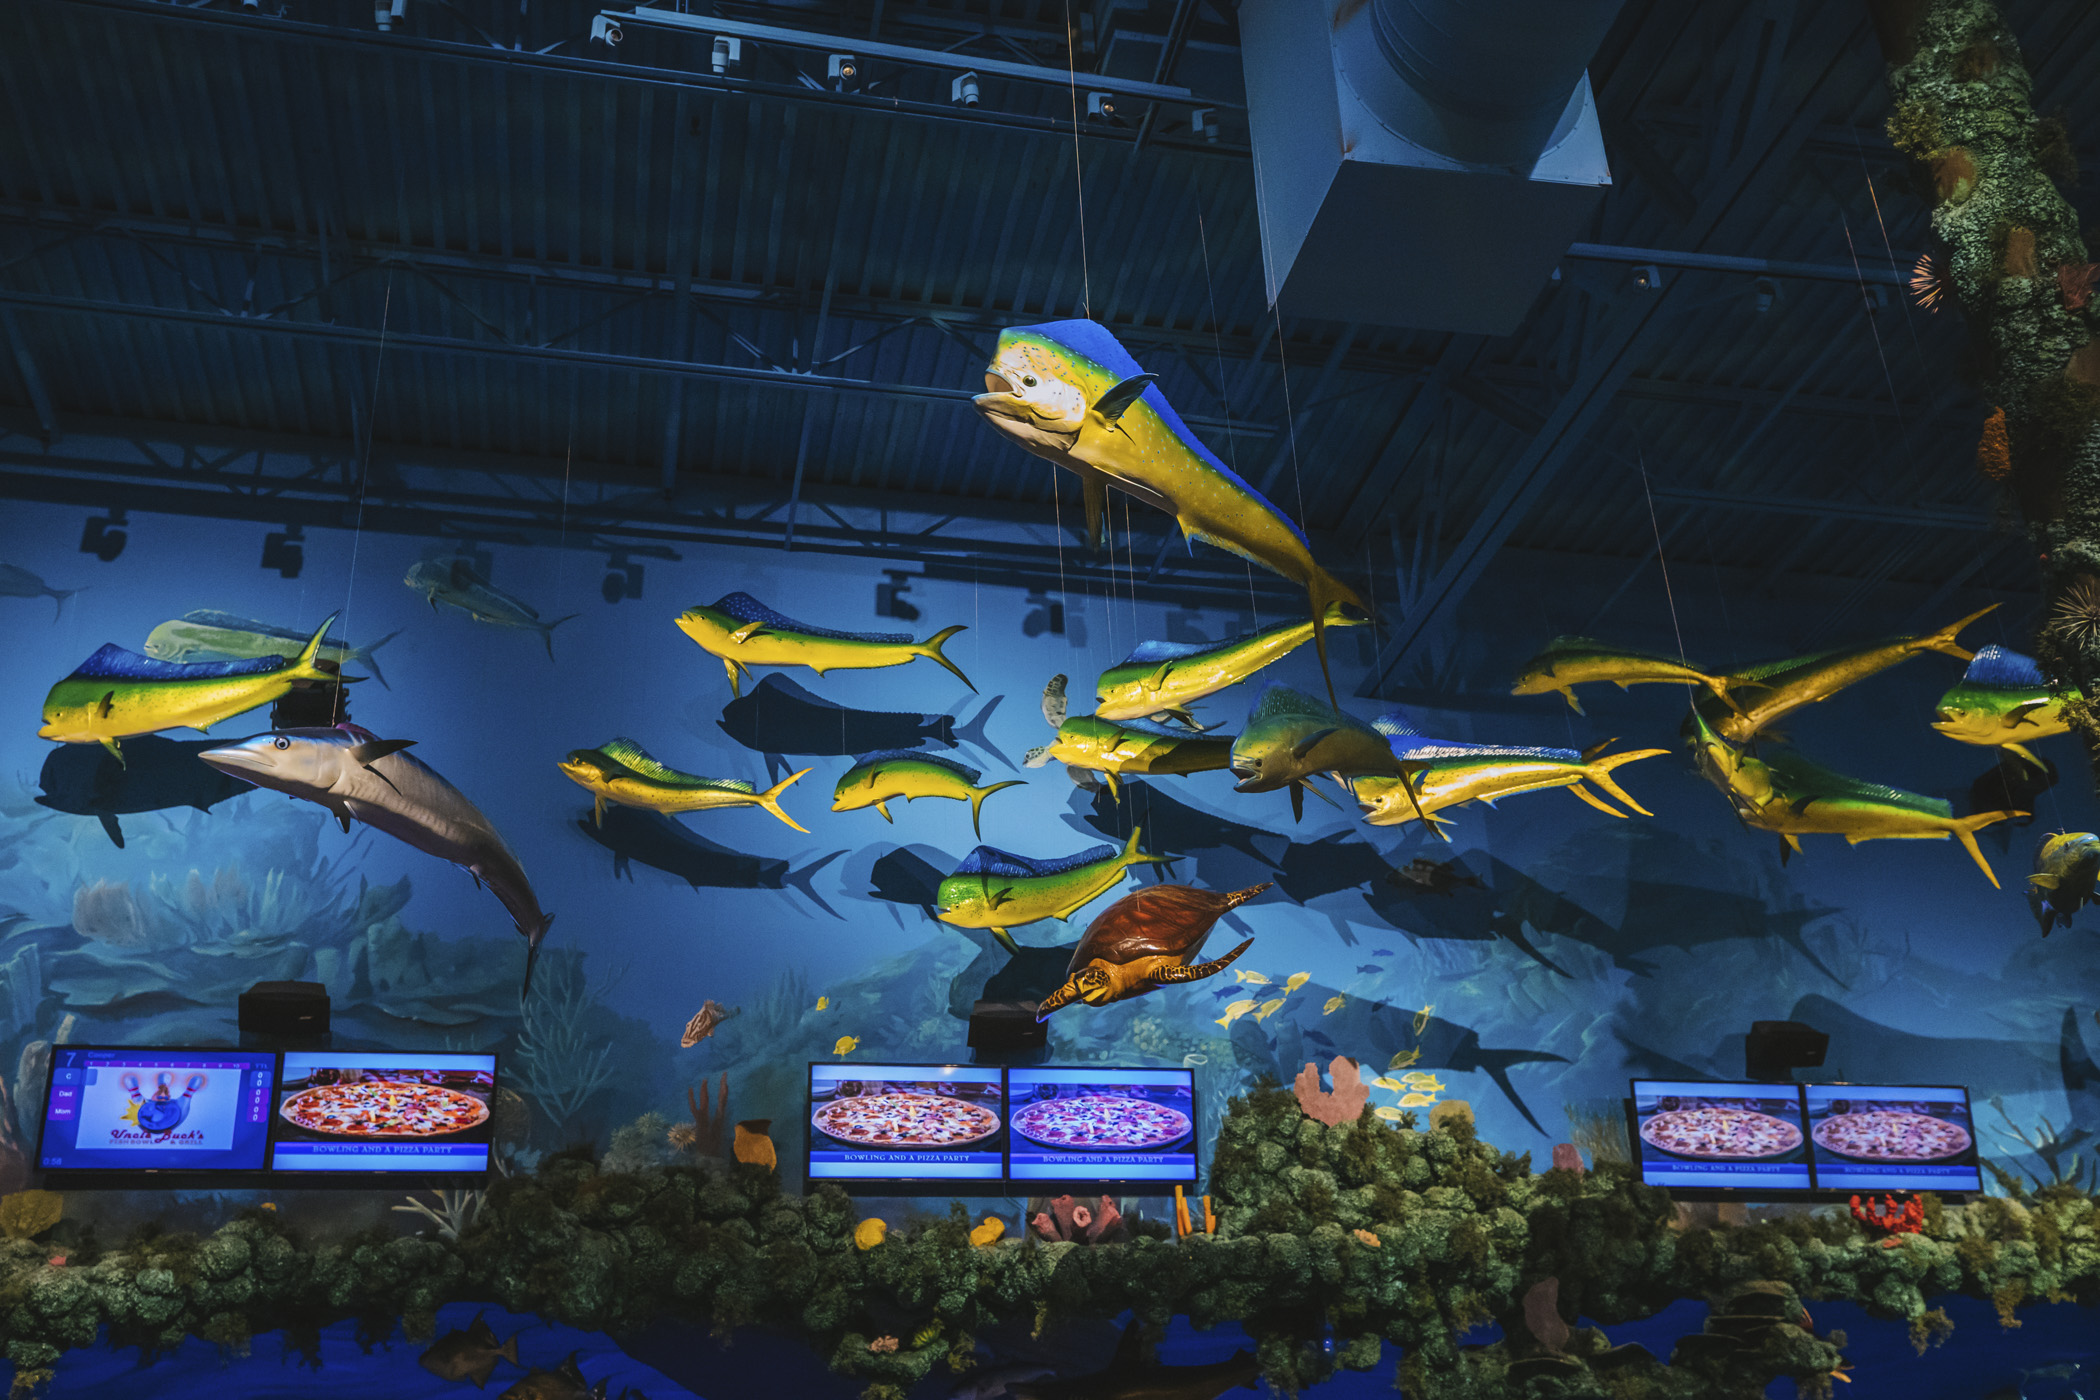 "Talk a-boat a catch! Uncle Buck's Fish Bowl & Grill is an ocean-themed restaurant & bowling alley in Tacoma, WA will truly knock your...galoshes off? With 12 full lanes of bowling, custom bowling balls like octopi, mermaids and camouflage, and wooden ""dock"" bowling lanes all surrounded by hand-painted murals of underwater scenery like sea turtles, sharks, stingrays, and fish hanging from the ceiling. If this sounds like the place for a party - you'd be right! You can rent out the Trophy Room for events. More info, hours and prices{&nbsp;}<a  href=""https://www.unclebucksfishbowlandgrill.com/"" target=""_blank"" title=""https://www.unclebucksfishbowlandgrill.com/"">online</a>. (Image: Sunita Martini / Seattle Refined){&nbsp;}"